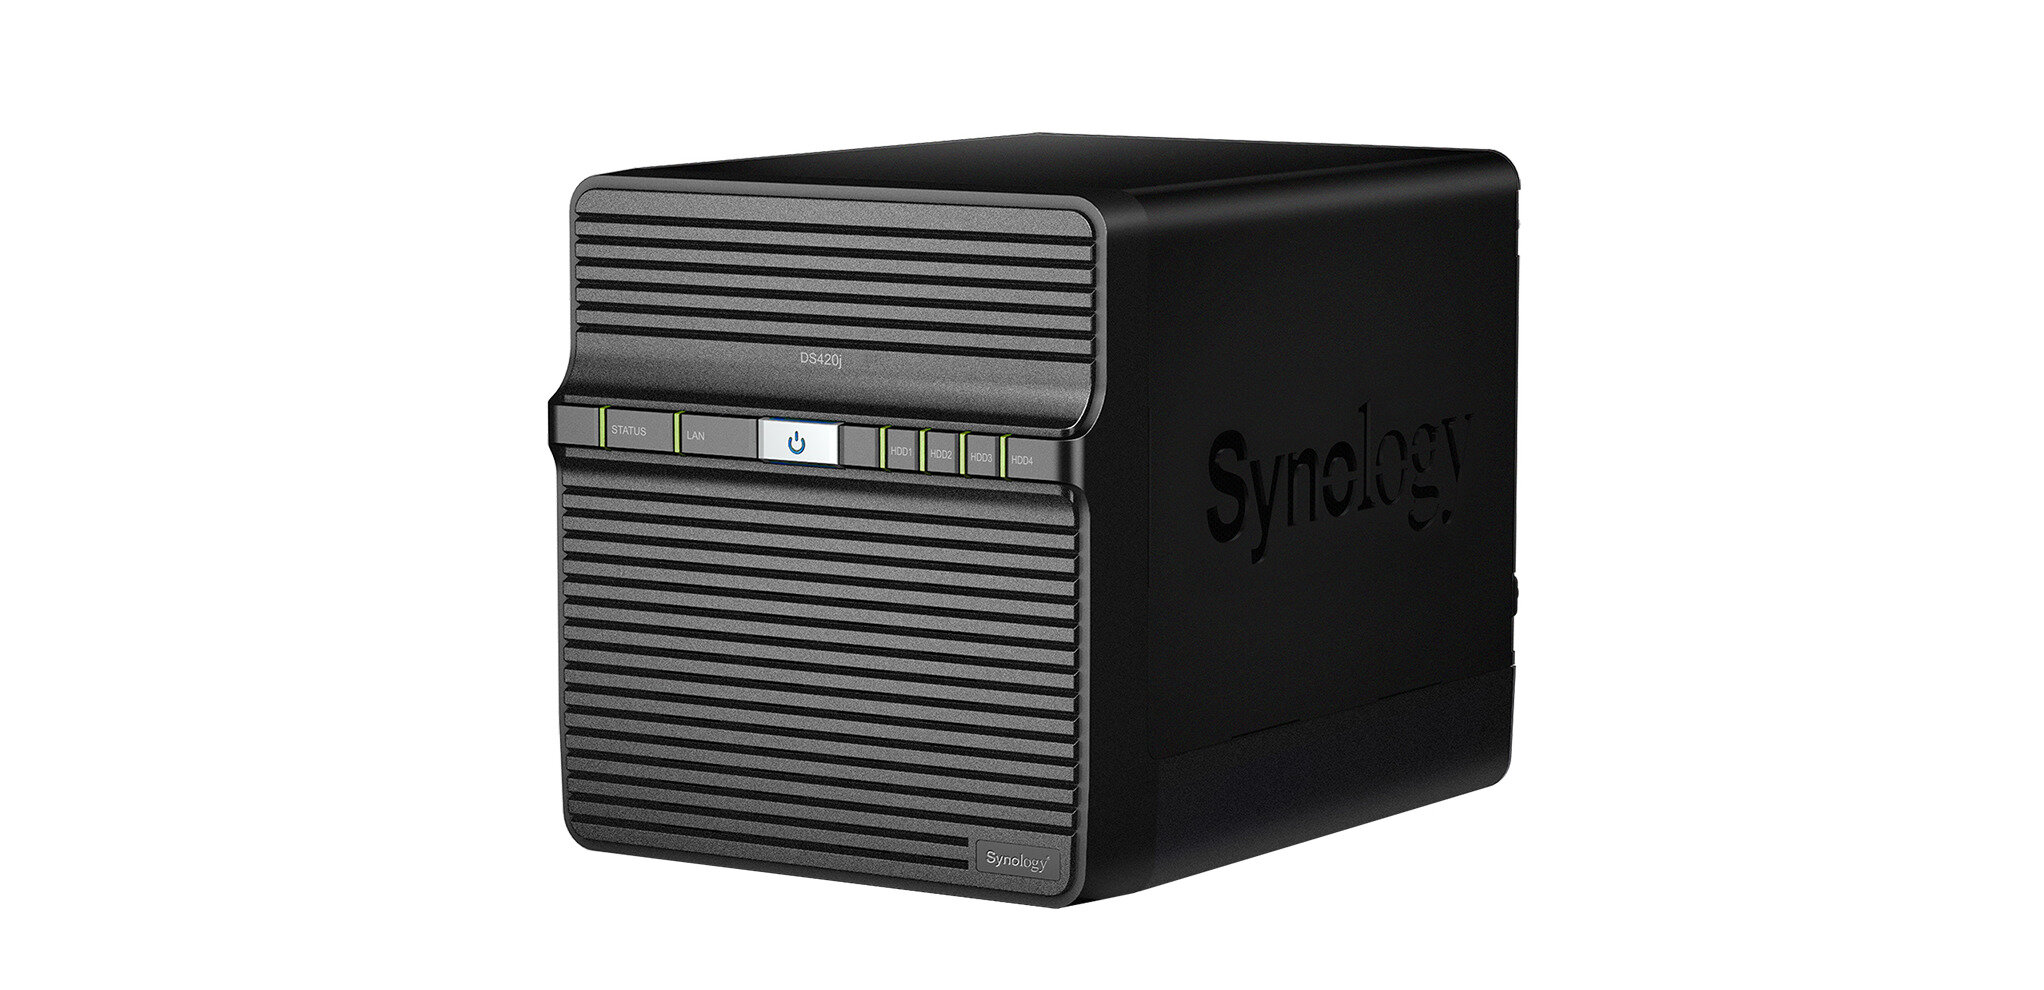 Le NAS DS420j de Synology arrive en France à 313 euros